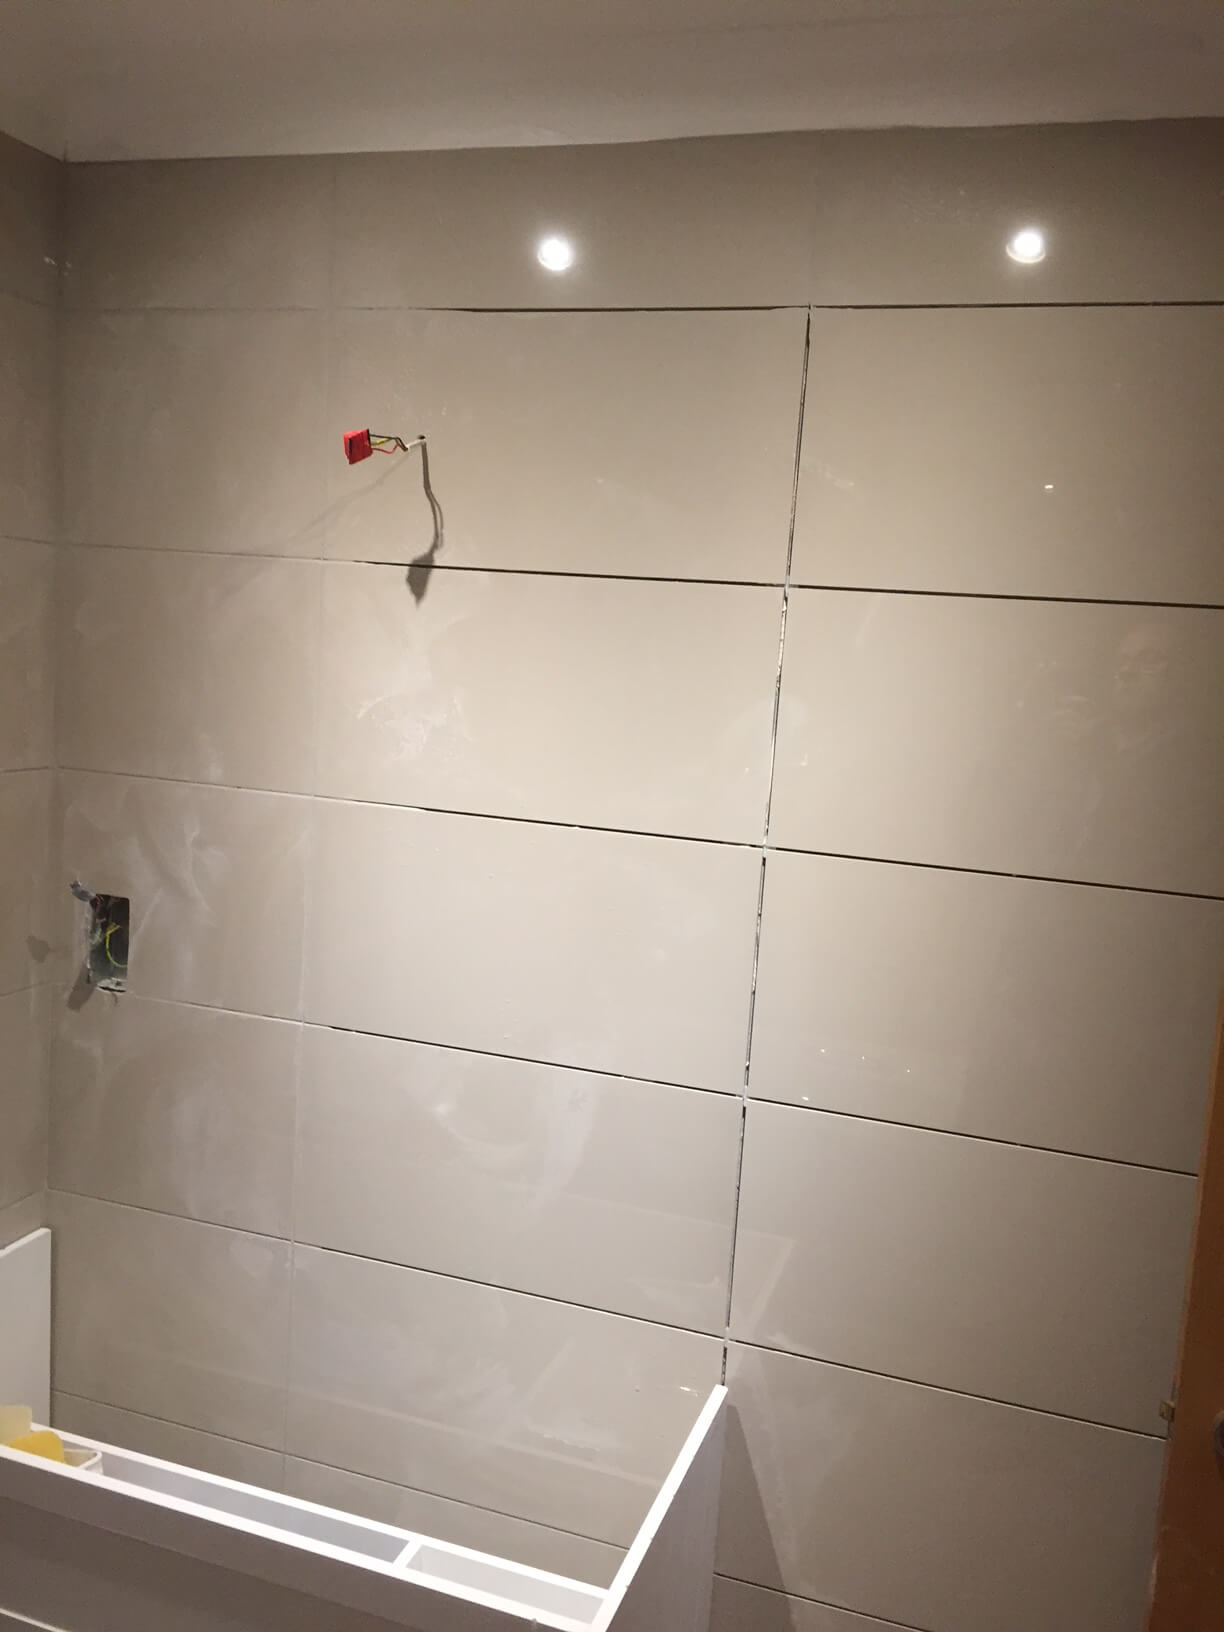 Starting to grout